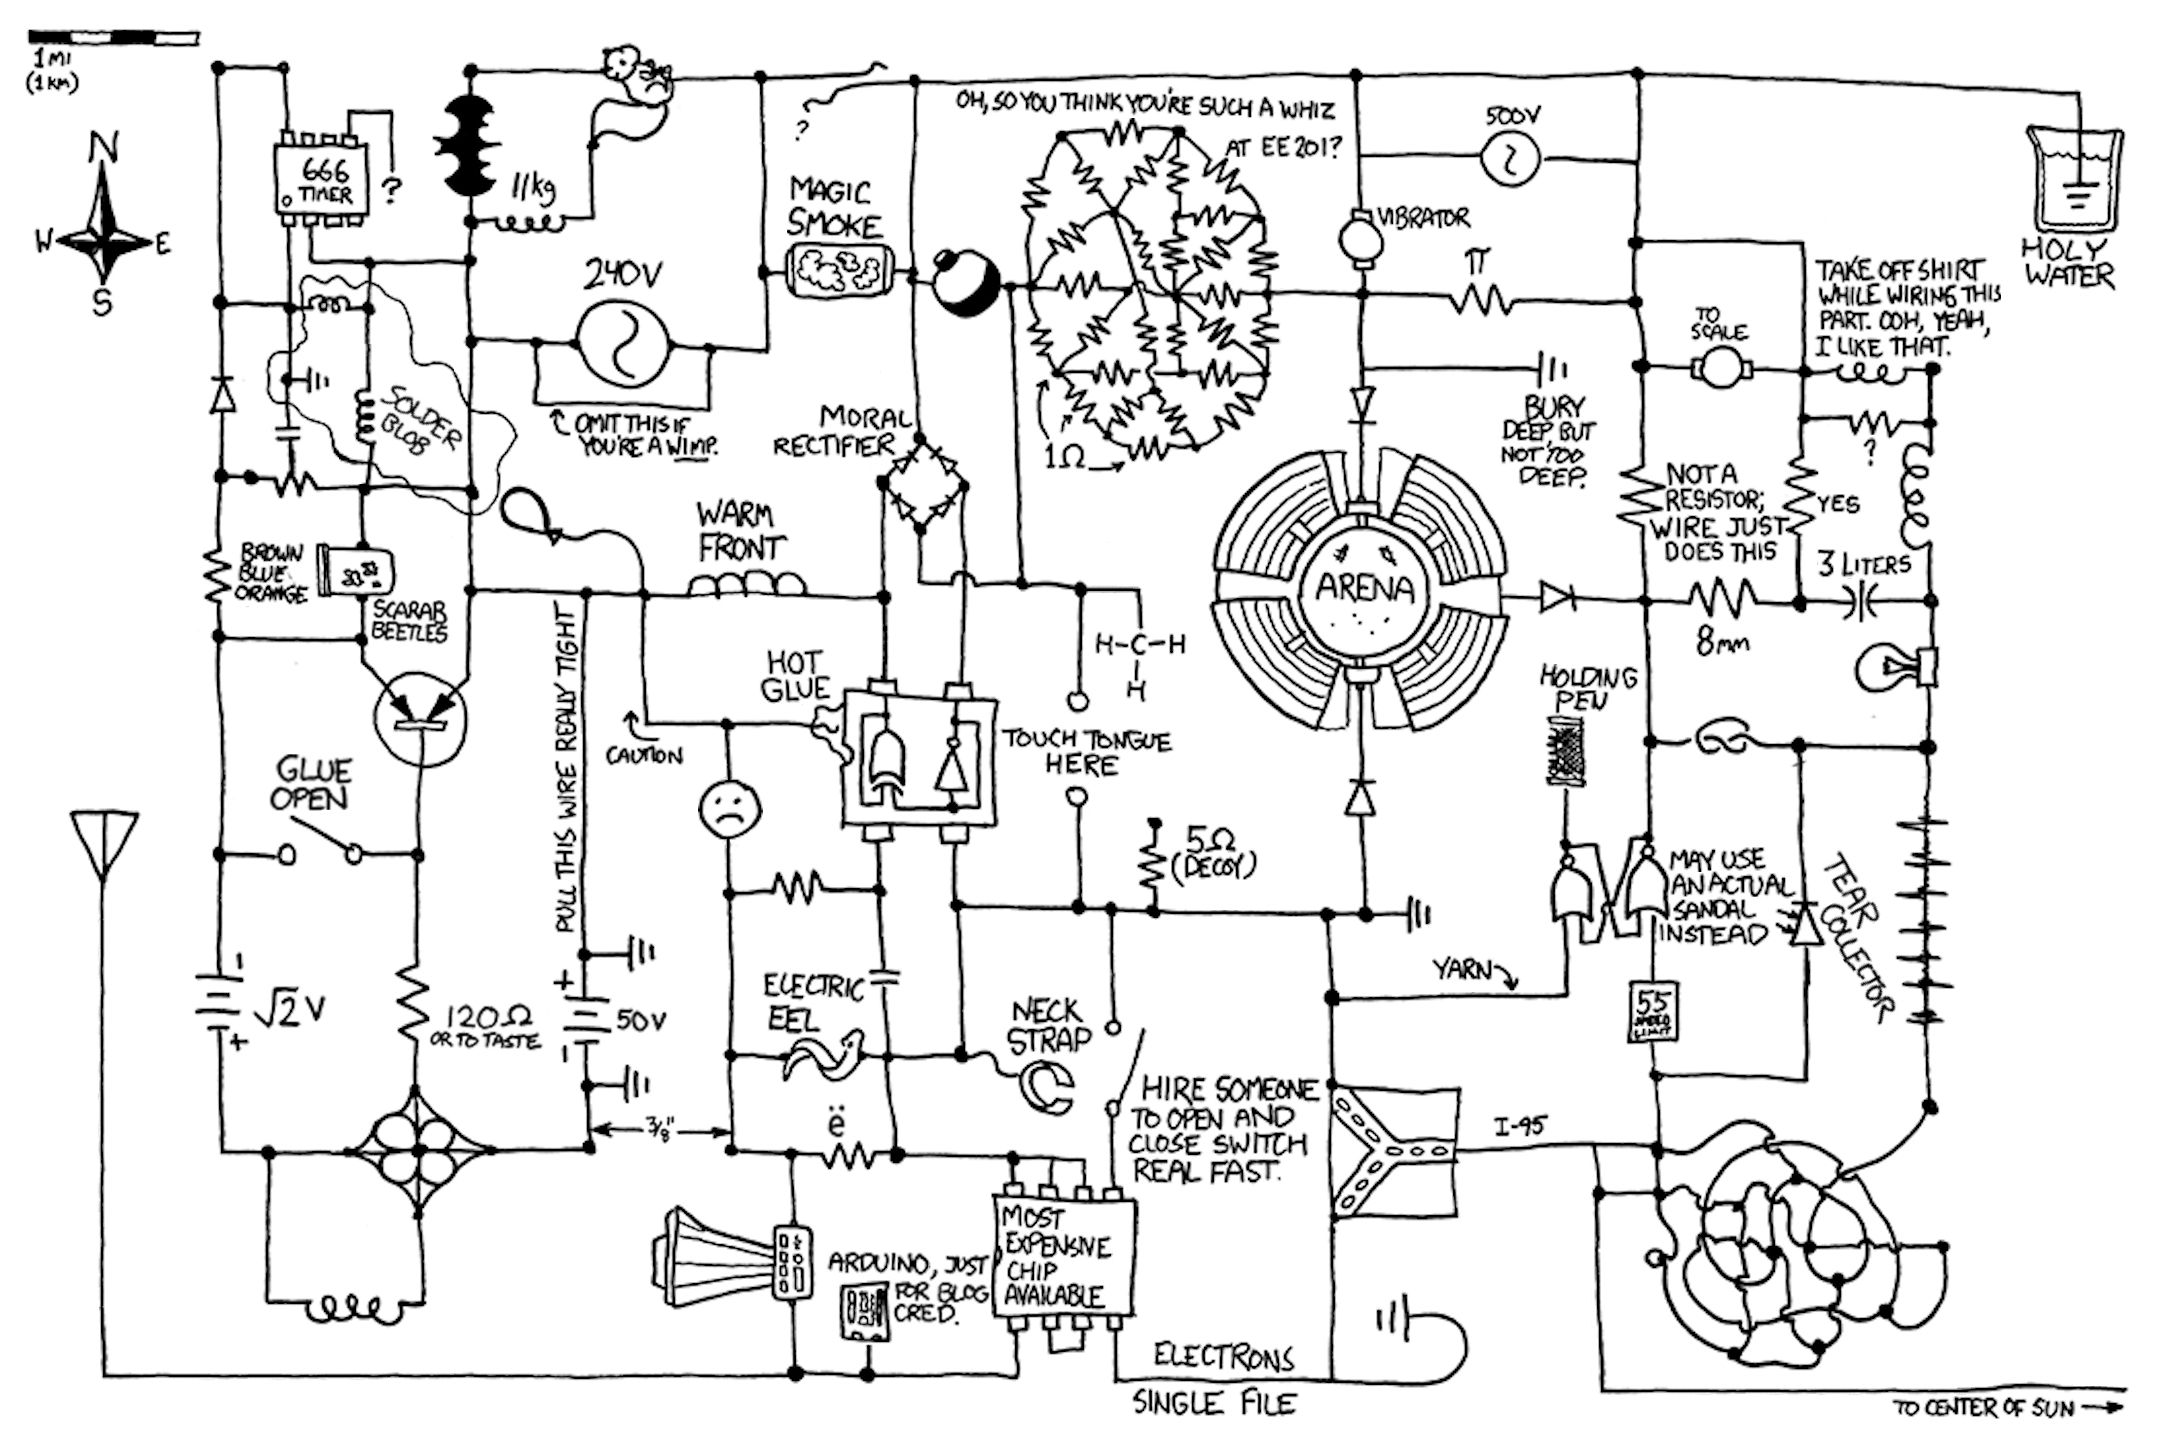 hight resolution of i rotated all of the text in circuit diagram xkcd 730 so it can be wiring diagram xjcd online